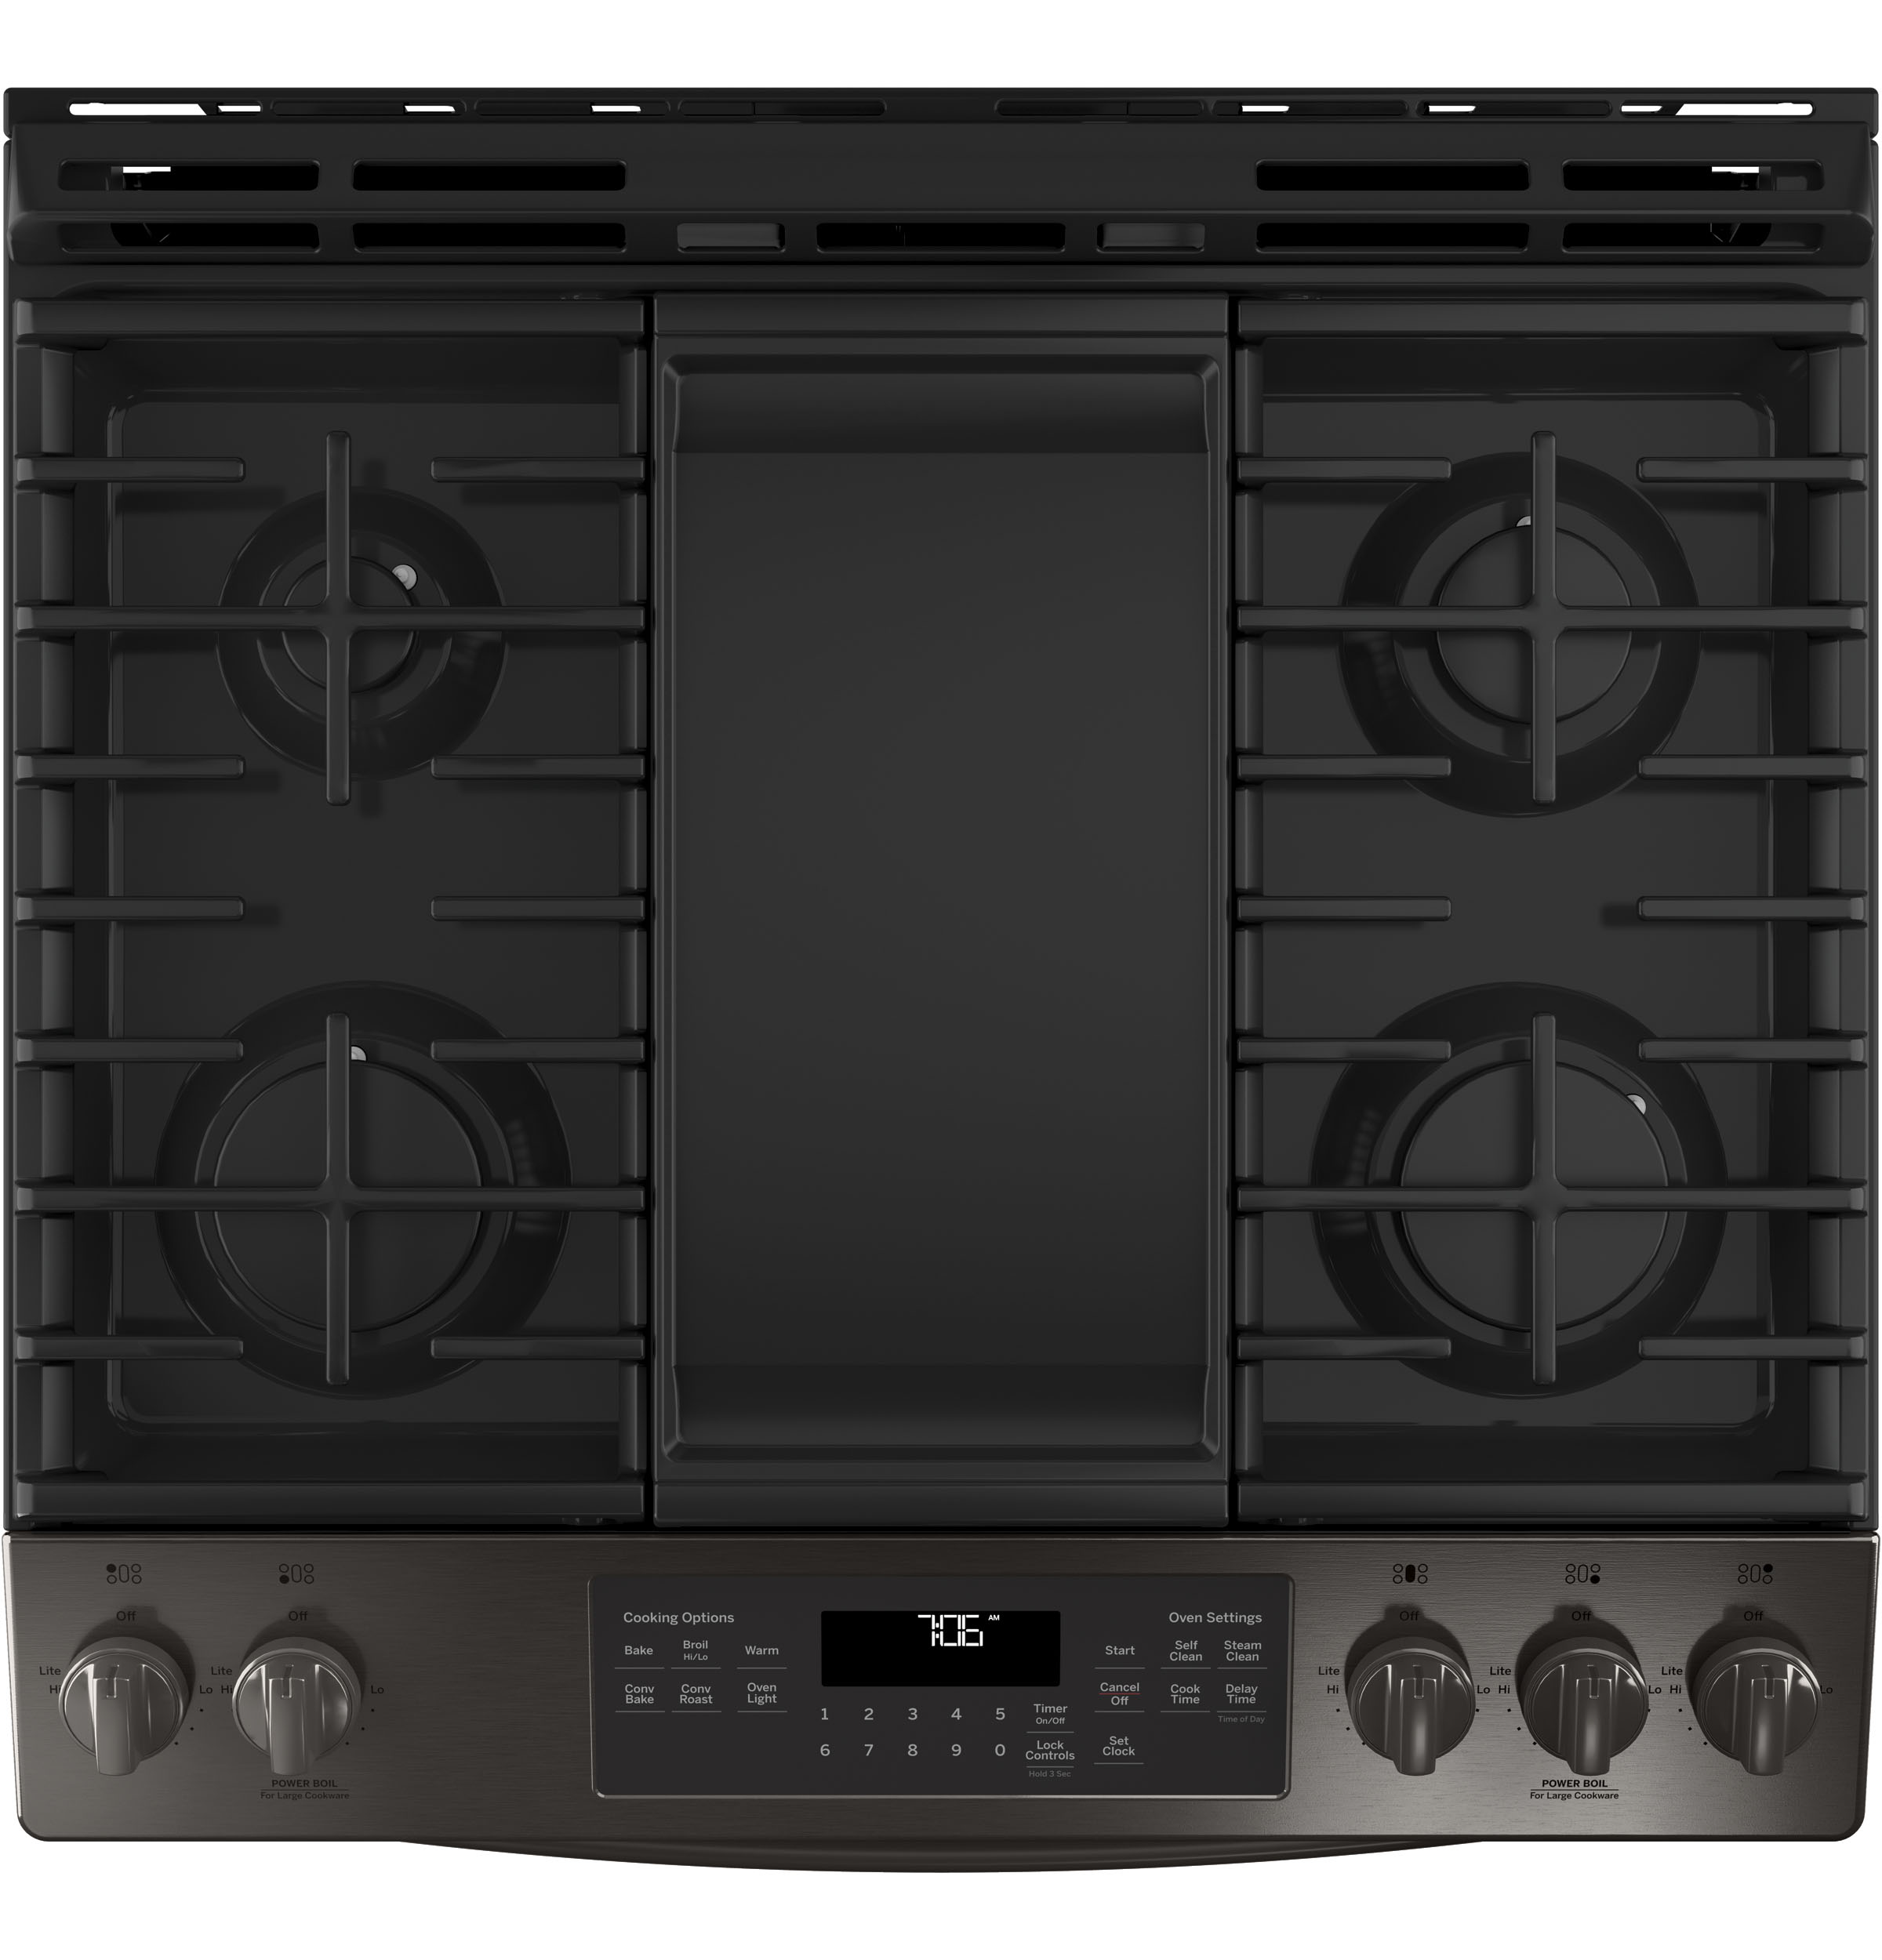 "Model: JGS760BELTS | GE GE® 30"" Slide-In Front-Control Convection Gas Range"